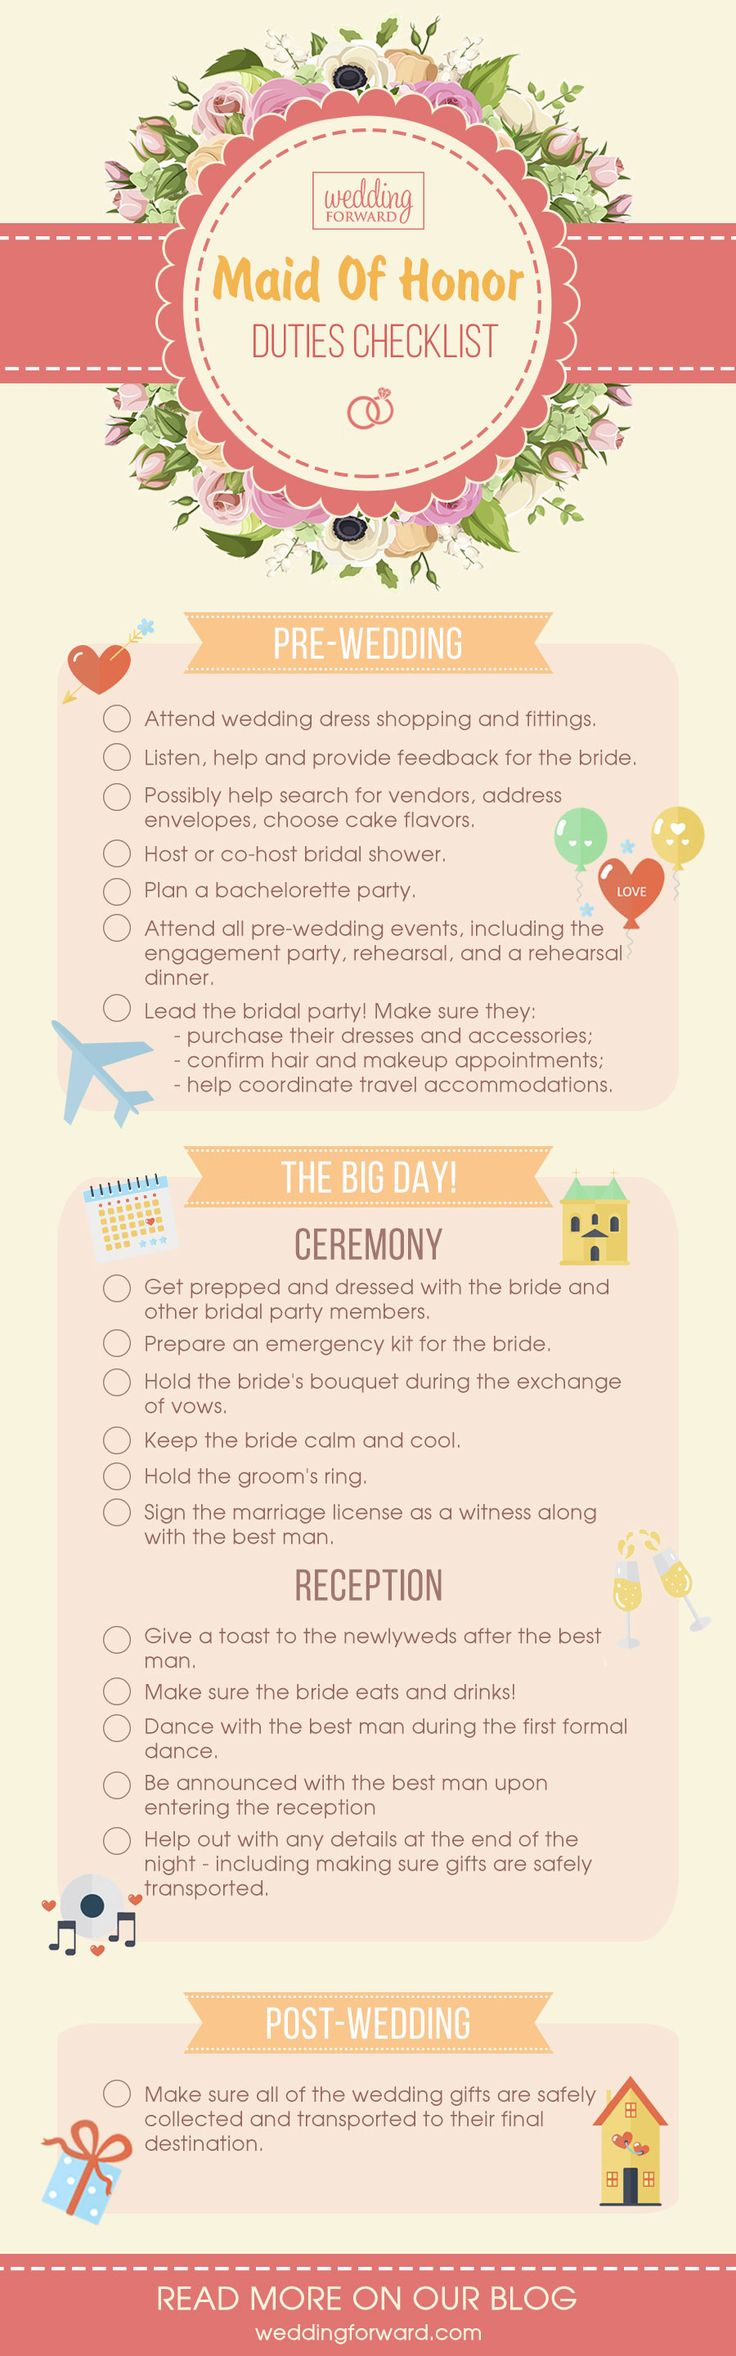 25 Best Ideas About Bridesmaid Duties On Pinterest Bachlorette Party Bridesmaid Tips And